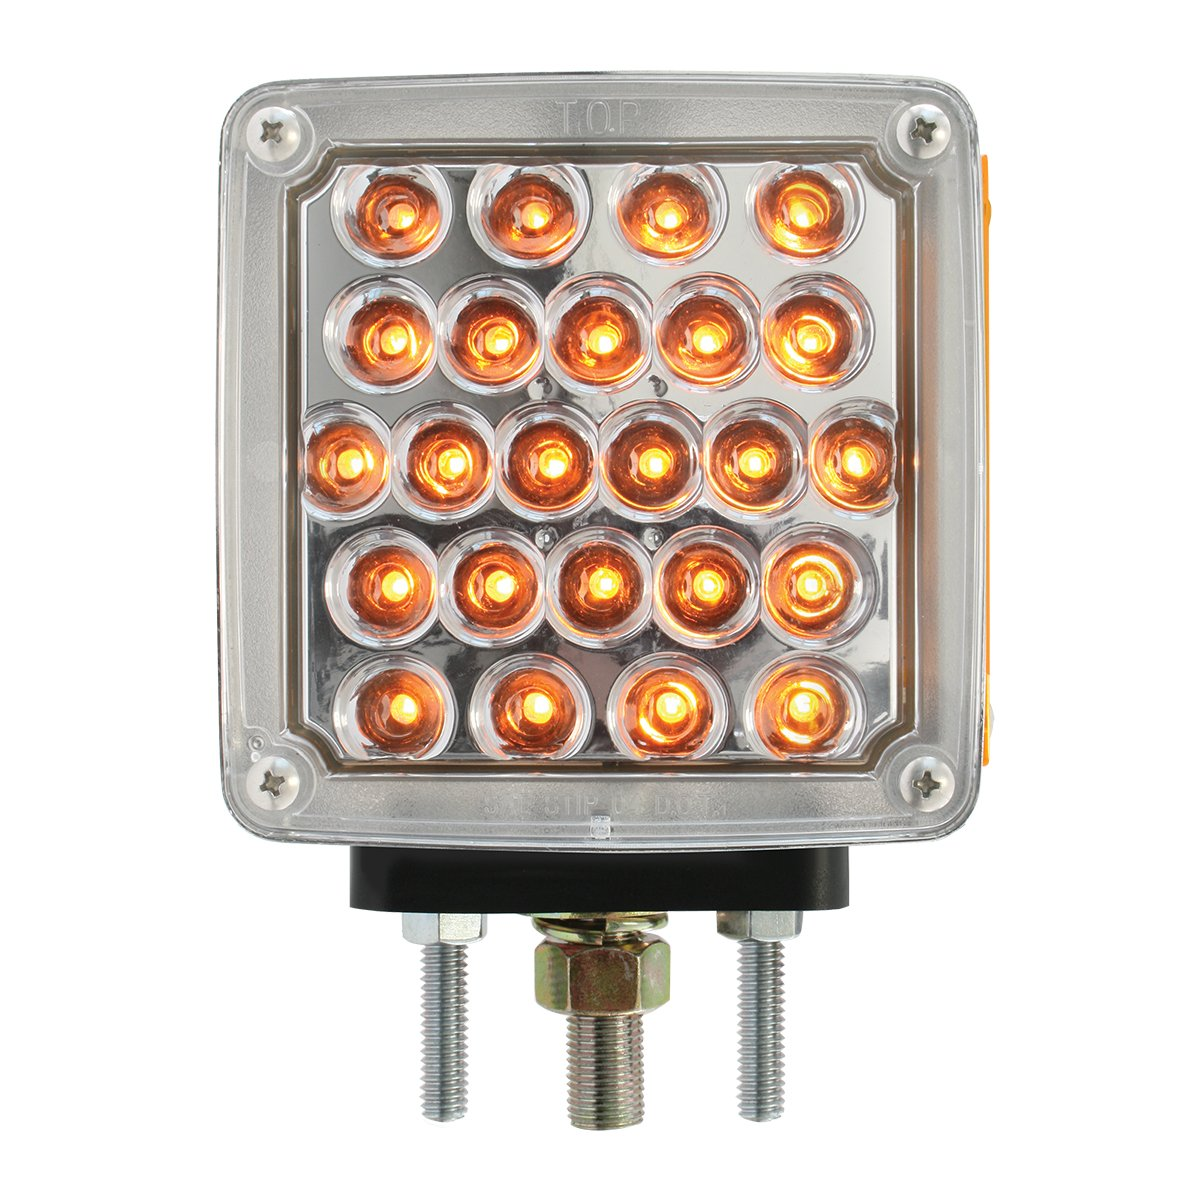 Grand General 77622 Amber/Clear 4.5'' Pearl Square Double Face LED Pedestal Light (for Truck/SUV/RV/Vehicle/Trailer)